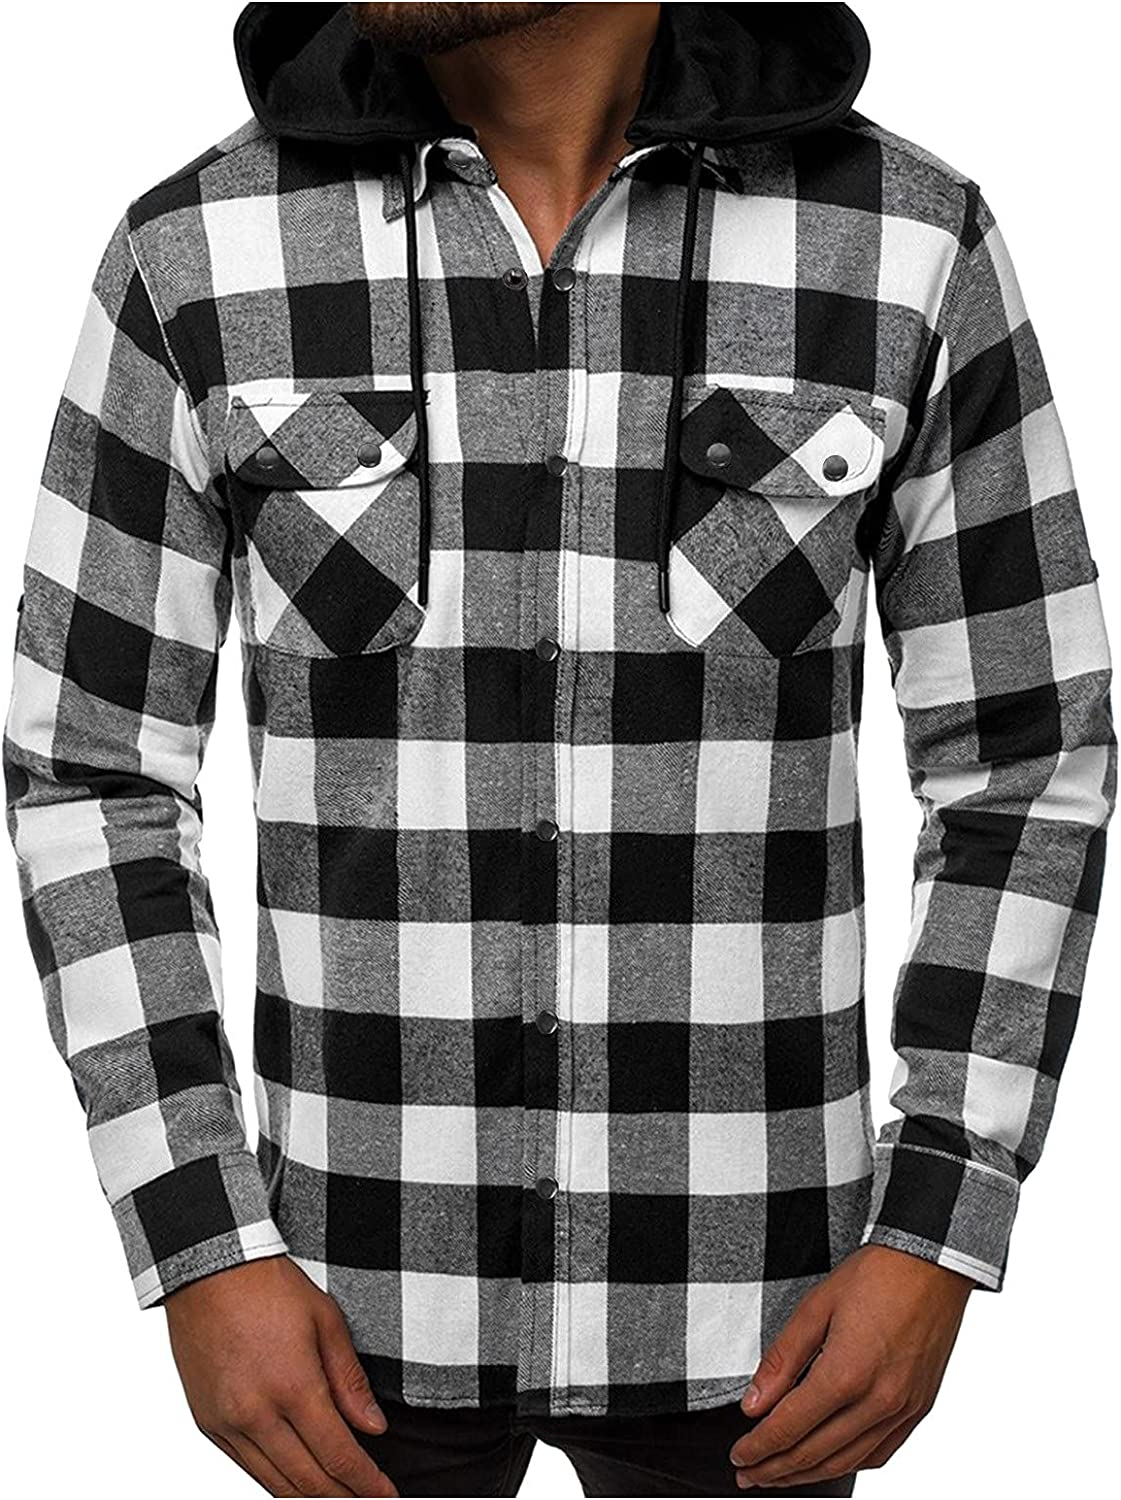 XXBR Checked Hoodies for Mens, 2021 Fall Plaid Removable Hooded Sweatshirt Snap On Button Casual Shirts with Pockets